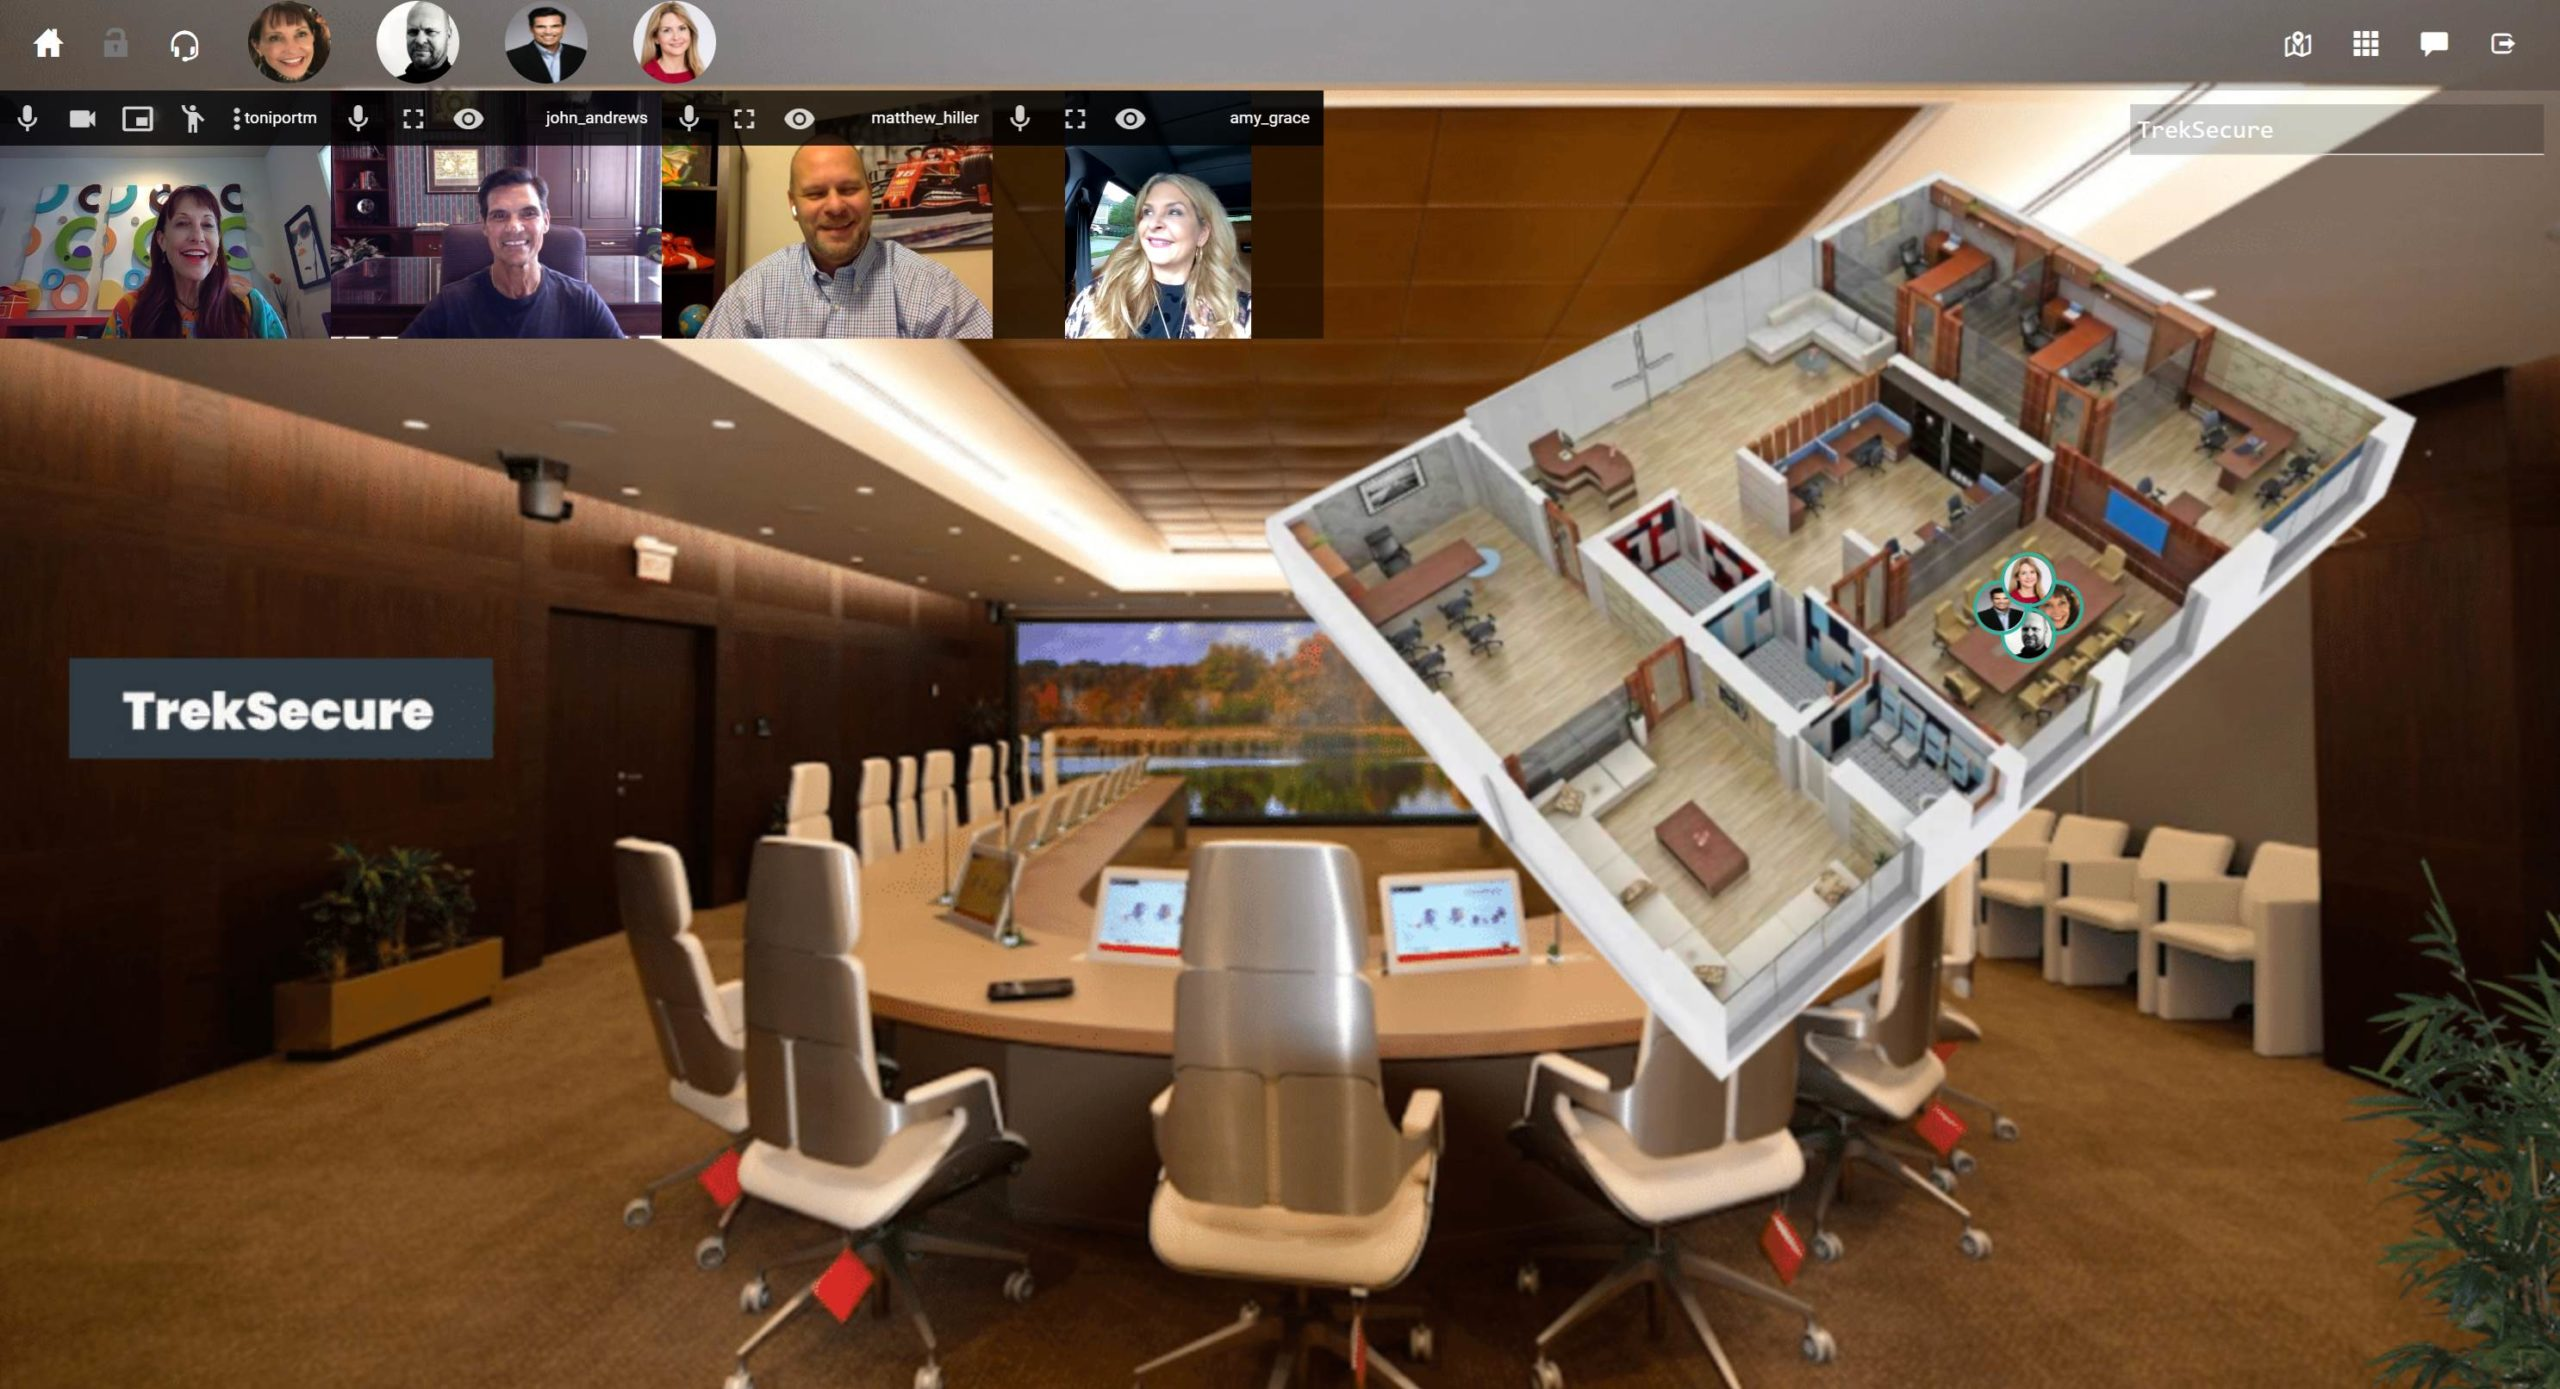 Company TrekSecure meeting virtually in their Walkabout Workplace custom remote office.